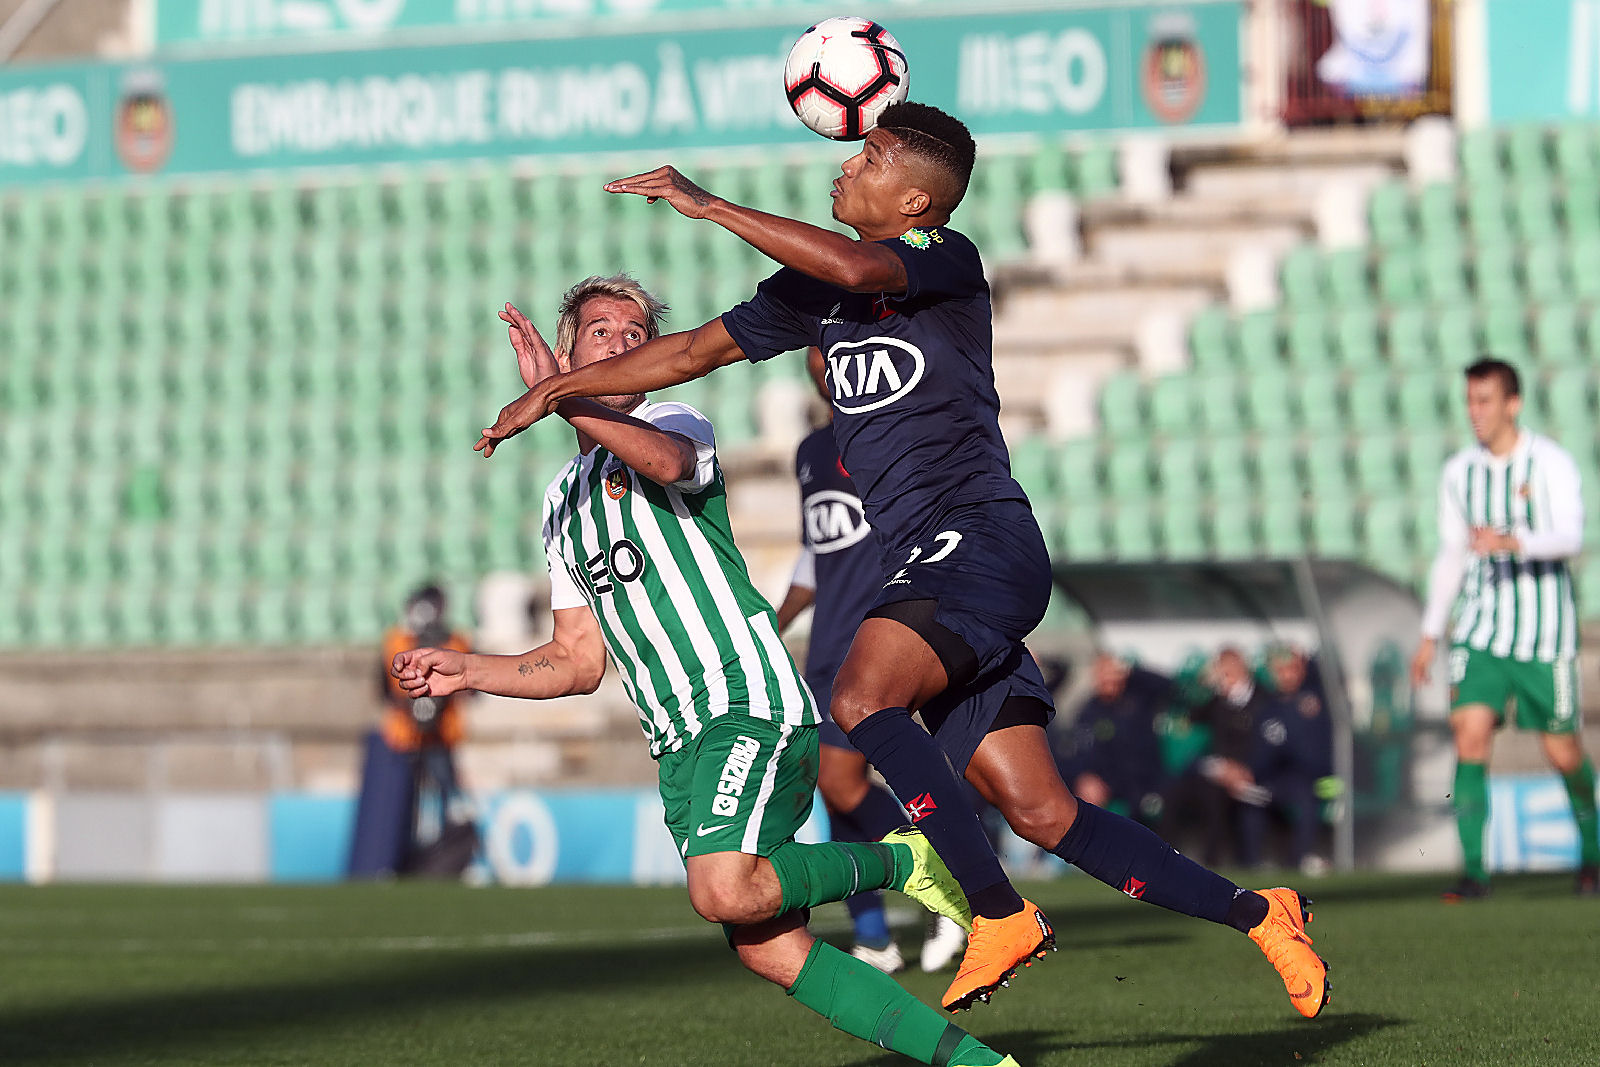 http://www.sportonstage.com/wp-content/uploads/2018/12/Rio-Ave-2-2-Belenenses-__AU1I1198.jpg